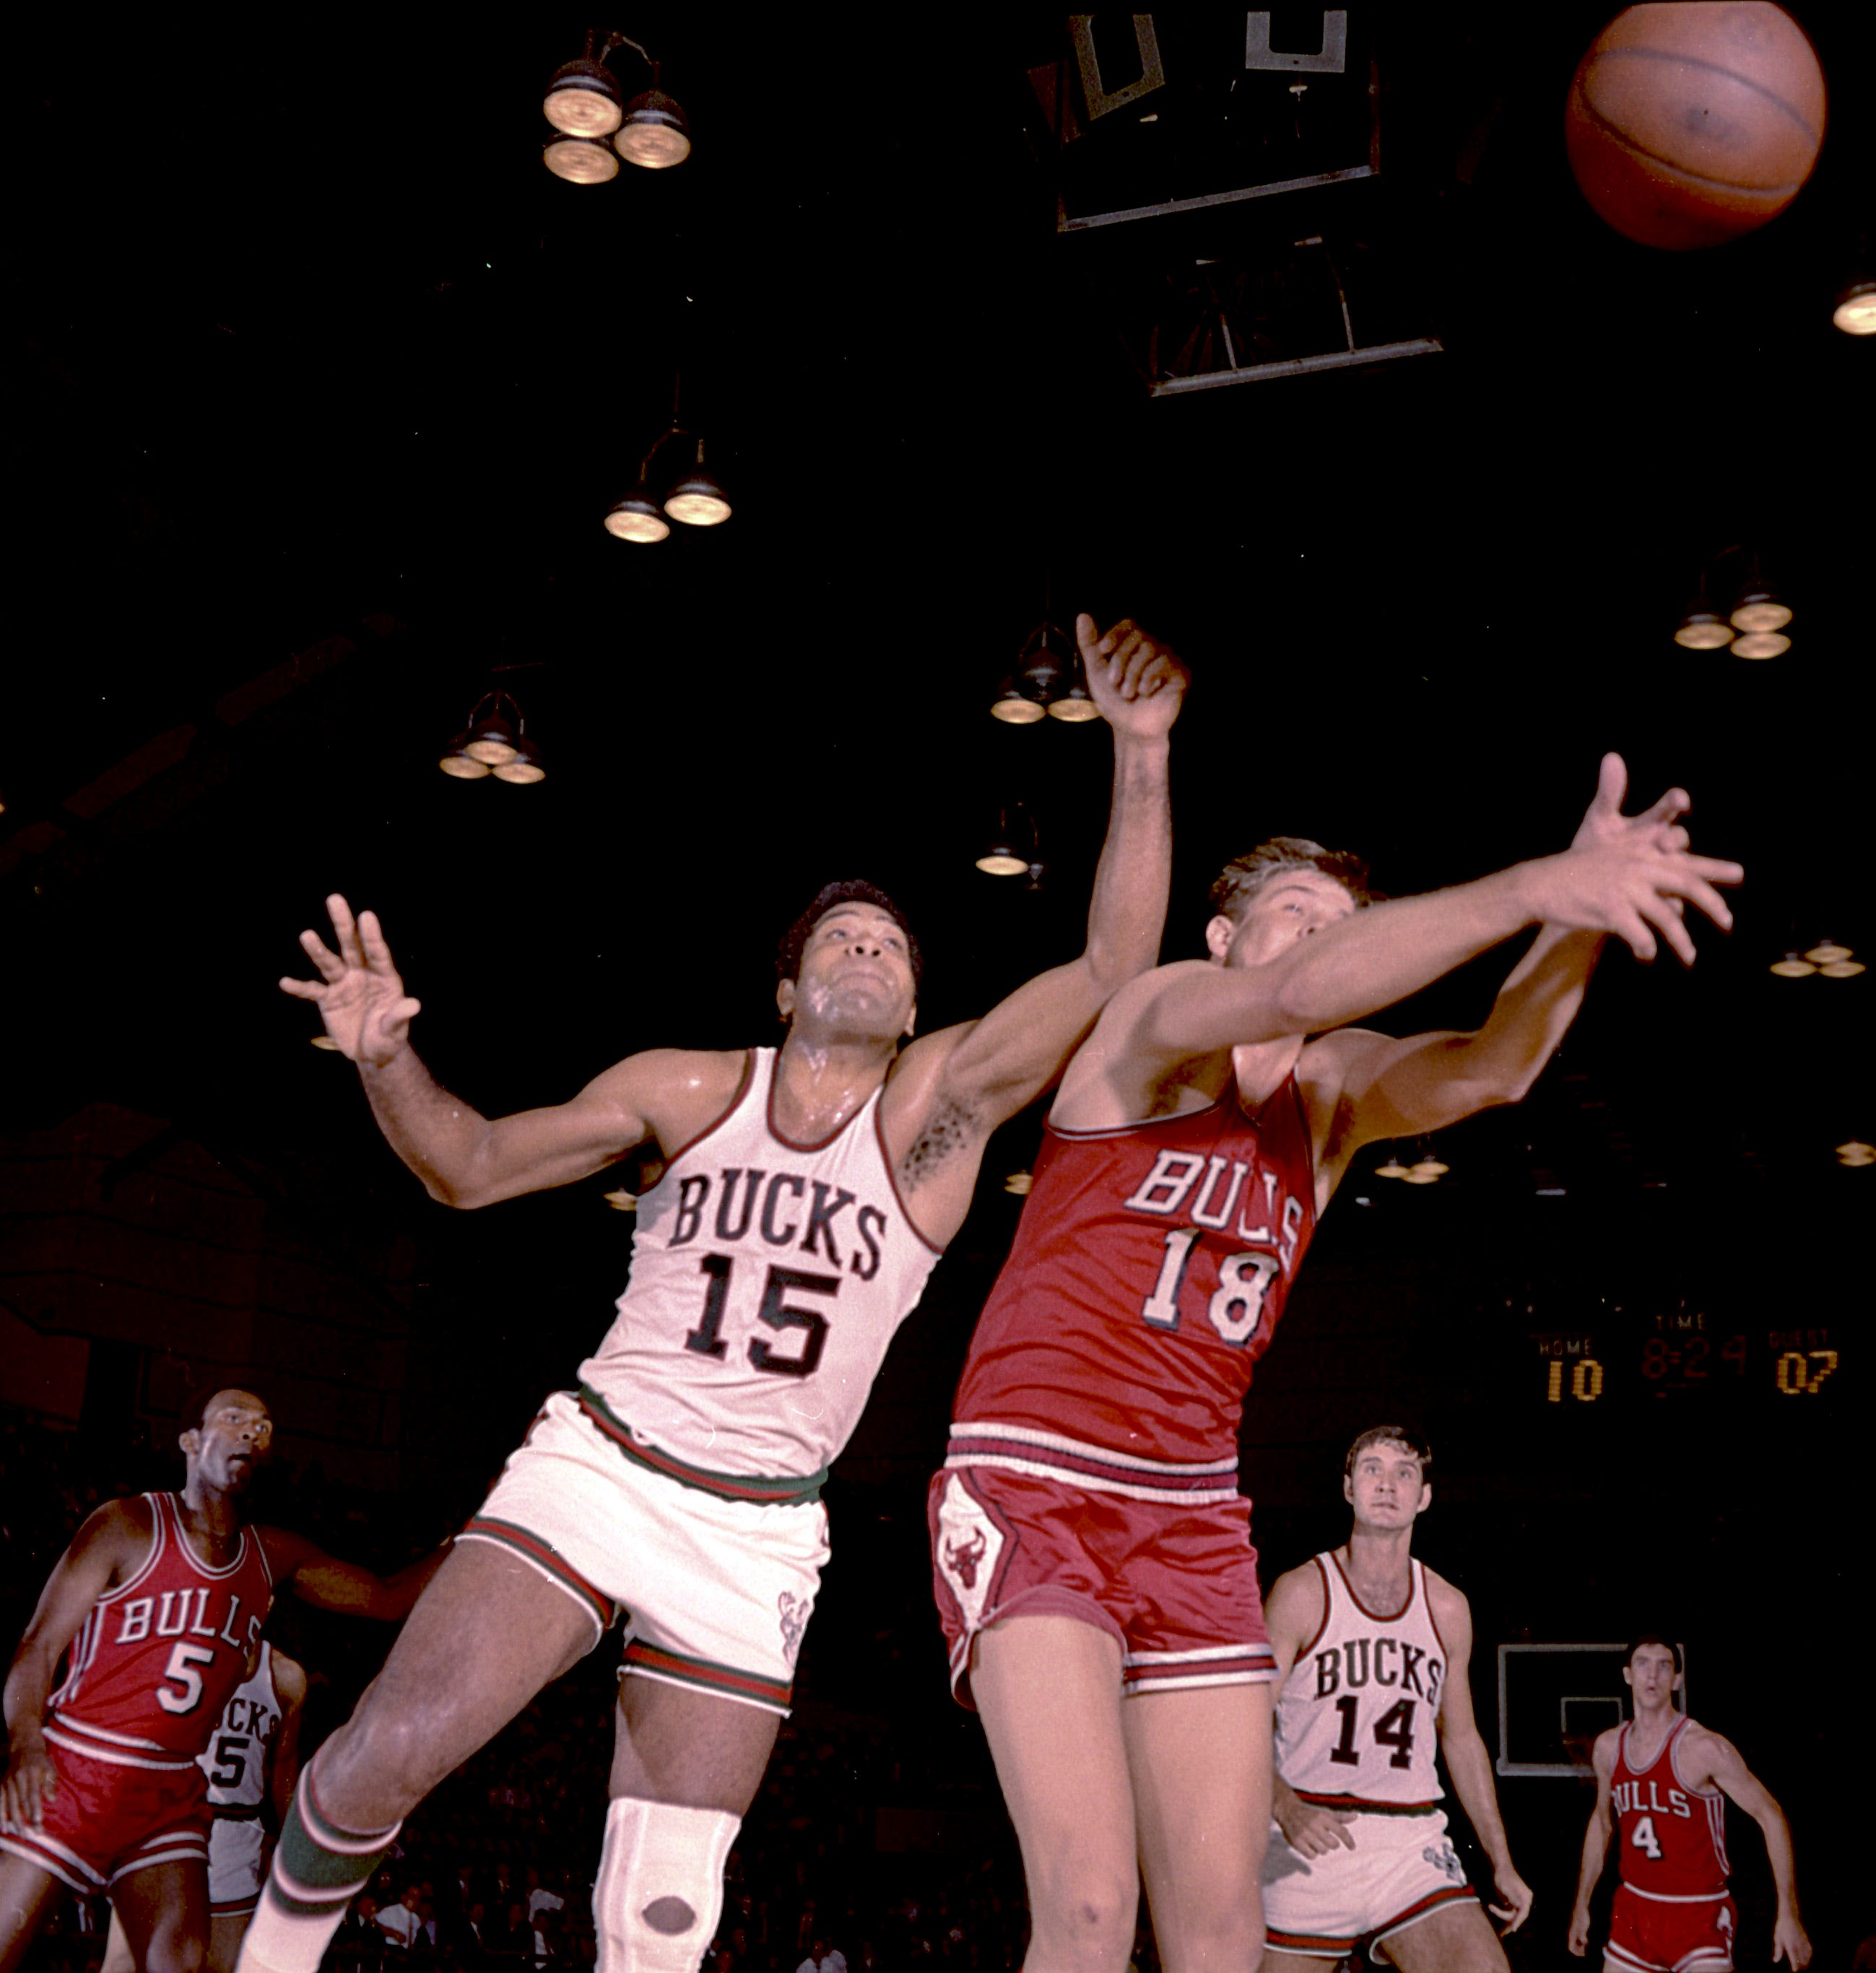 Battle of the big men: Milwaukee Bucks center Wayne Embry (15) and Chicago Bulls center Tom Boerwinkle (18) get up close and personal during the Bucks' first-ever game in the NBA on Oct. 16, 1968, at the Milwaukee Arena. Looking on are Bulls guards Flynn Robinson (5) and Jerry Sloan (4) and Bucks guard Jon McGlocklin (14). The Bucks lost, 89-84, in front of a crowd of 8,467 people.